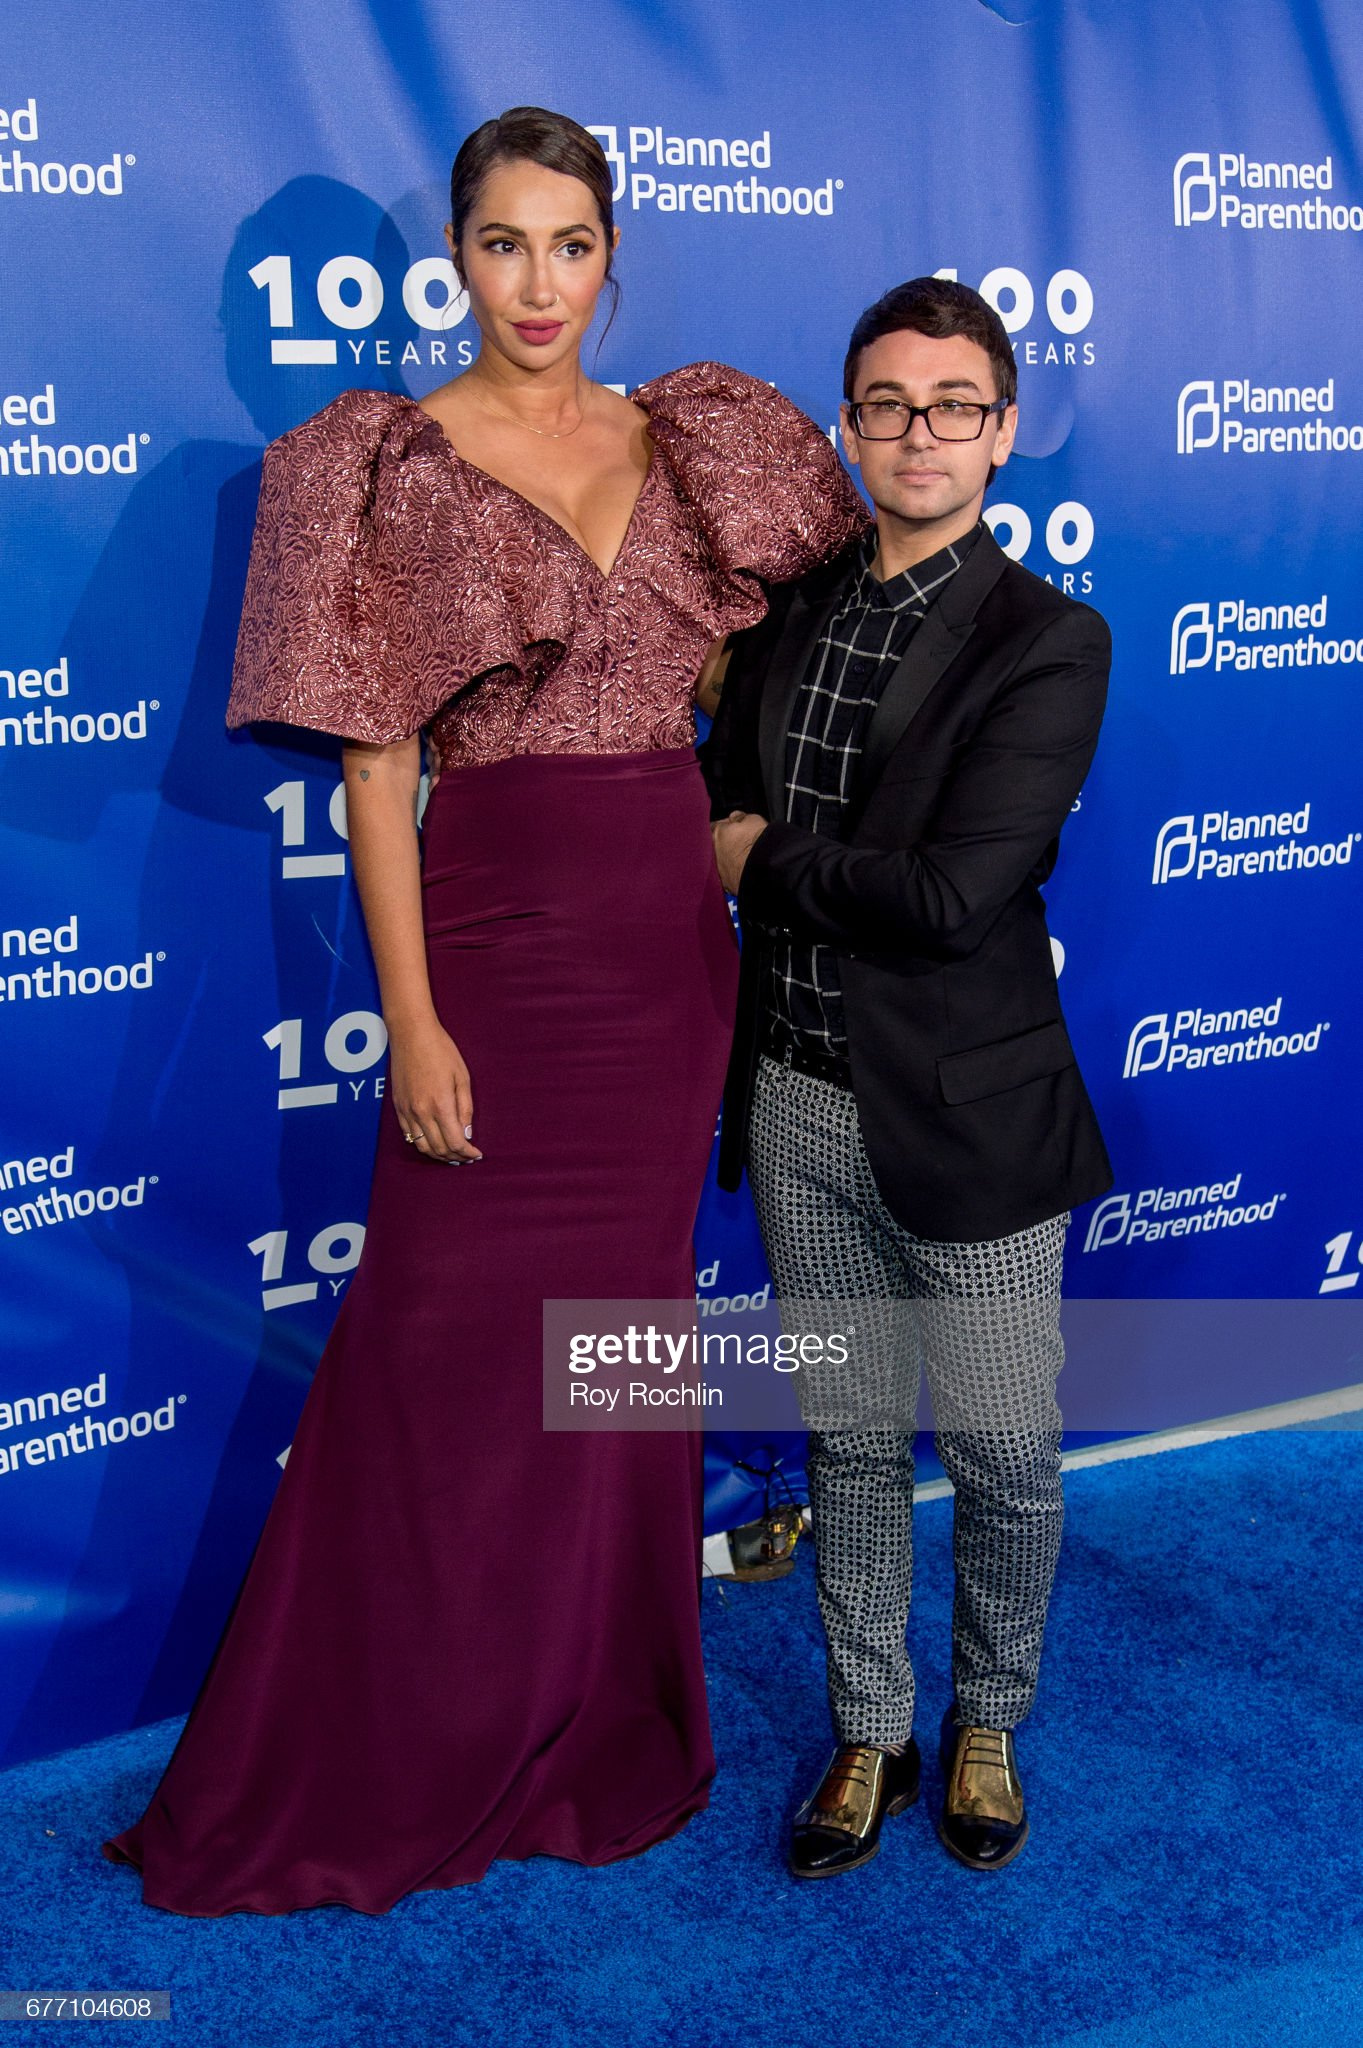 ¿Cuánto mide Christian Siriano? - Altura - Real height Jackie-cruz-wearing-a-christian-siriano-dress-and-christian-siriano-picture-id677104608?s=2048x2048